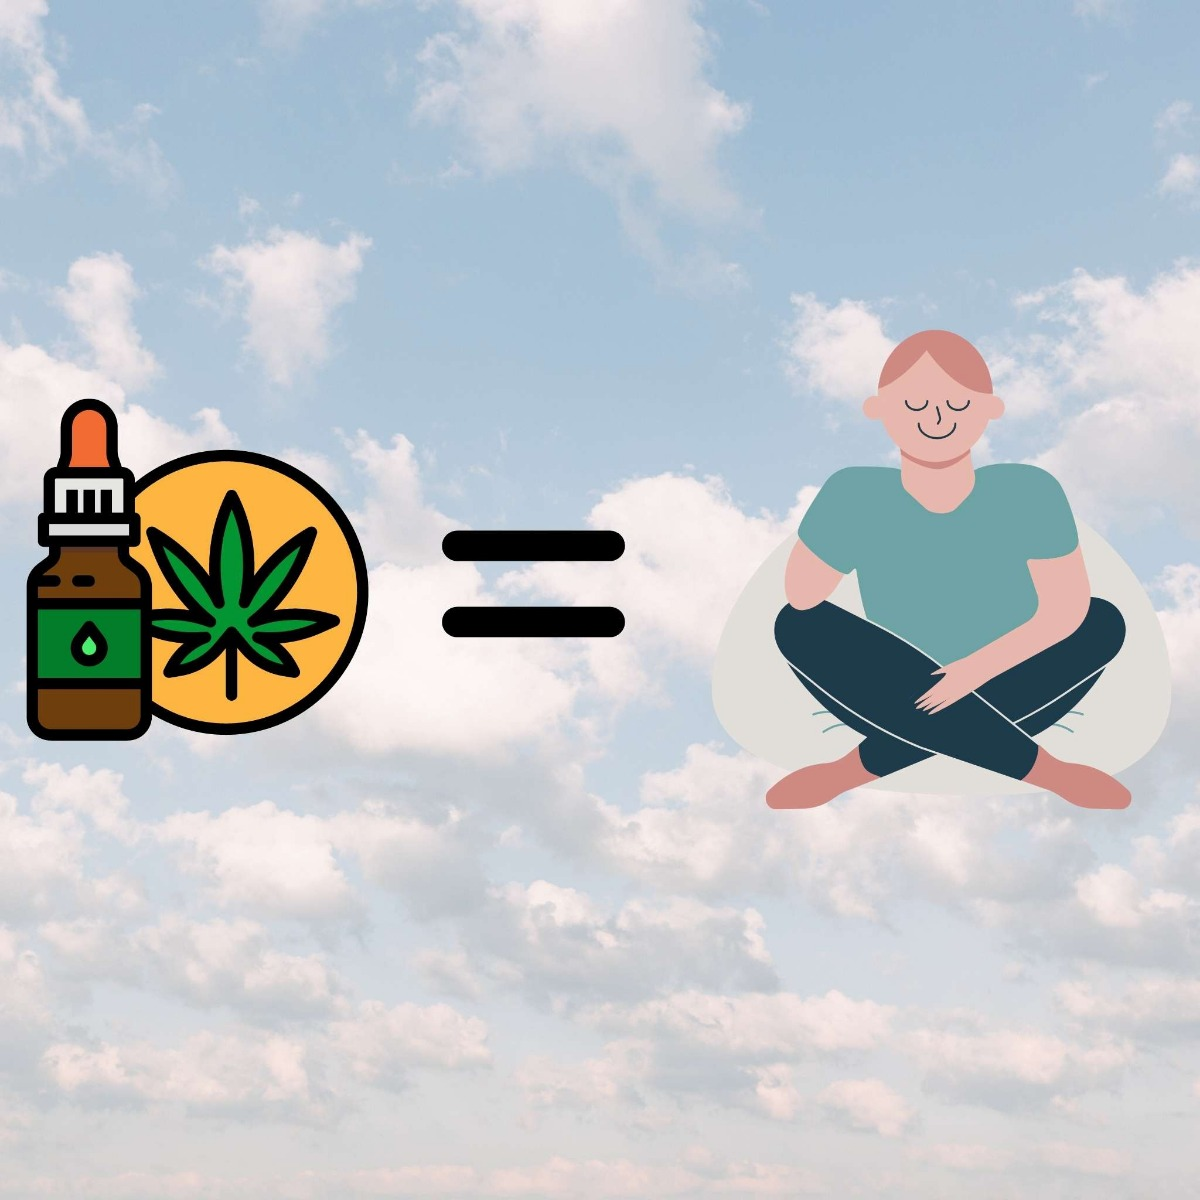 CBD bottle with equal sign then man relaxing with clouds in the background